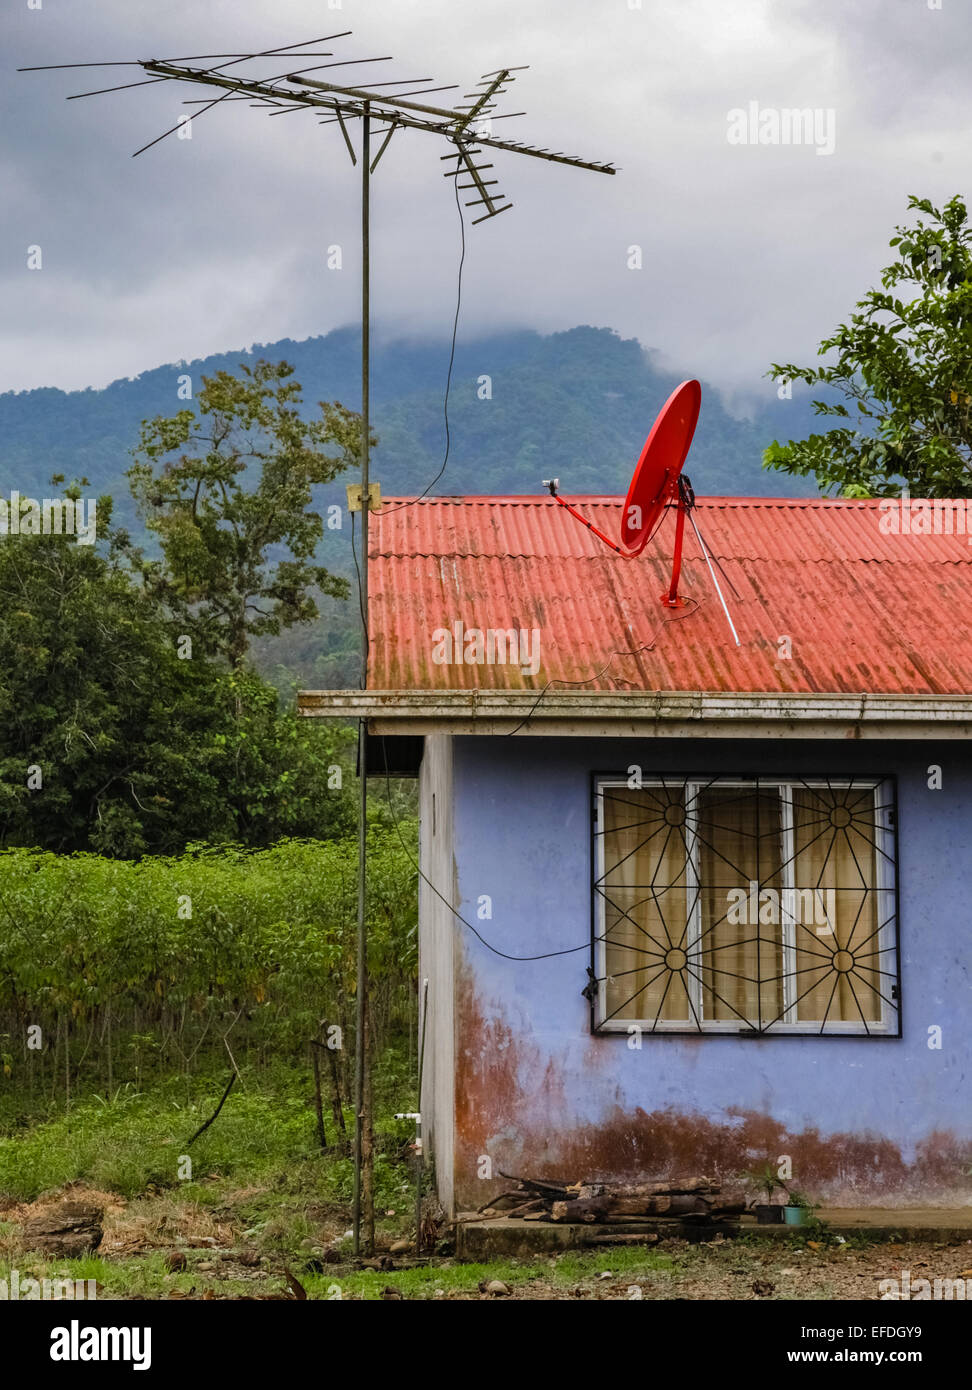 Telecommunication priorities of large aerial and satellite dish on the roof of a little house in Costa Rica - Stock Image